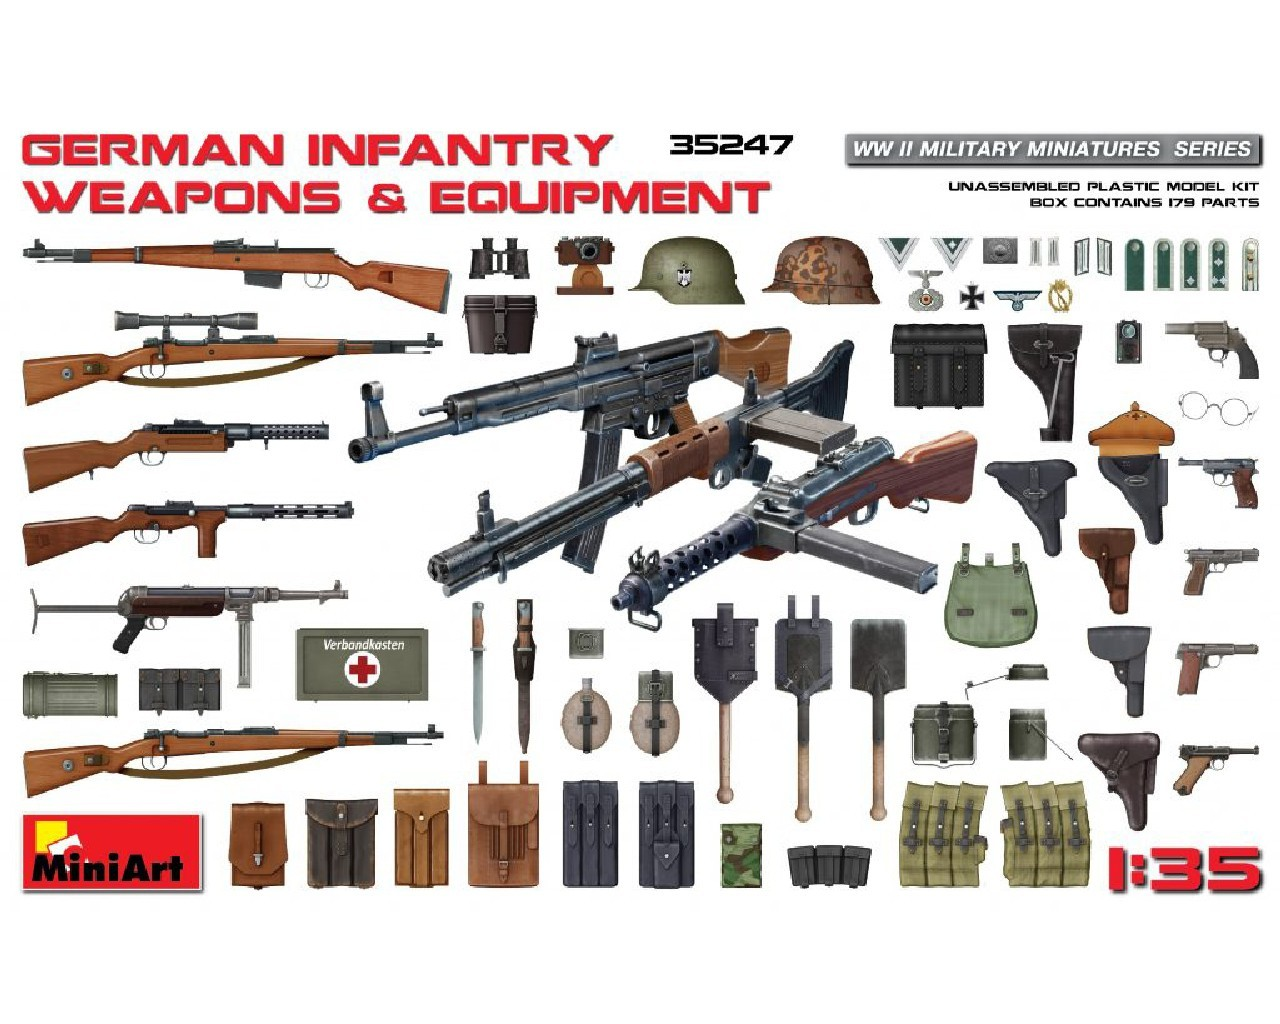 1/35 German Infantry Weapons and Equipment